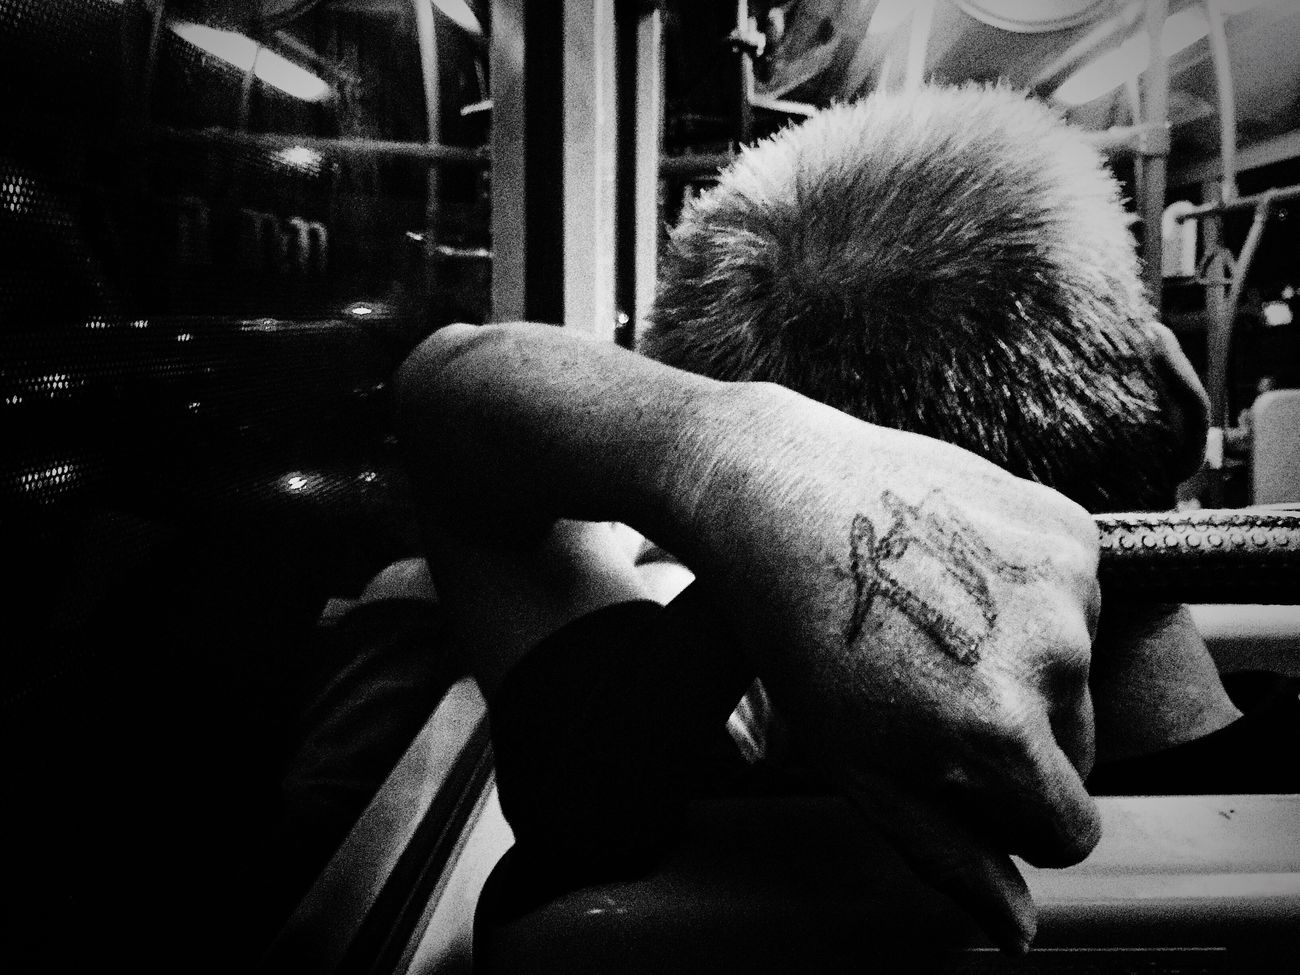 Inked Vengeance... Busrides Inked Vengeance Reminder Story Looking Back Past Anger First Eyeem Photo